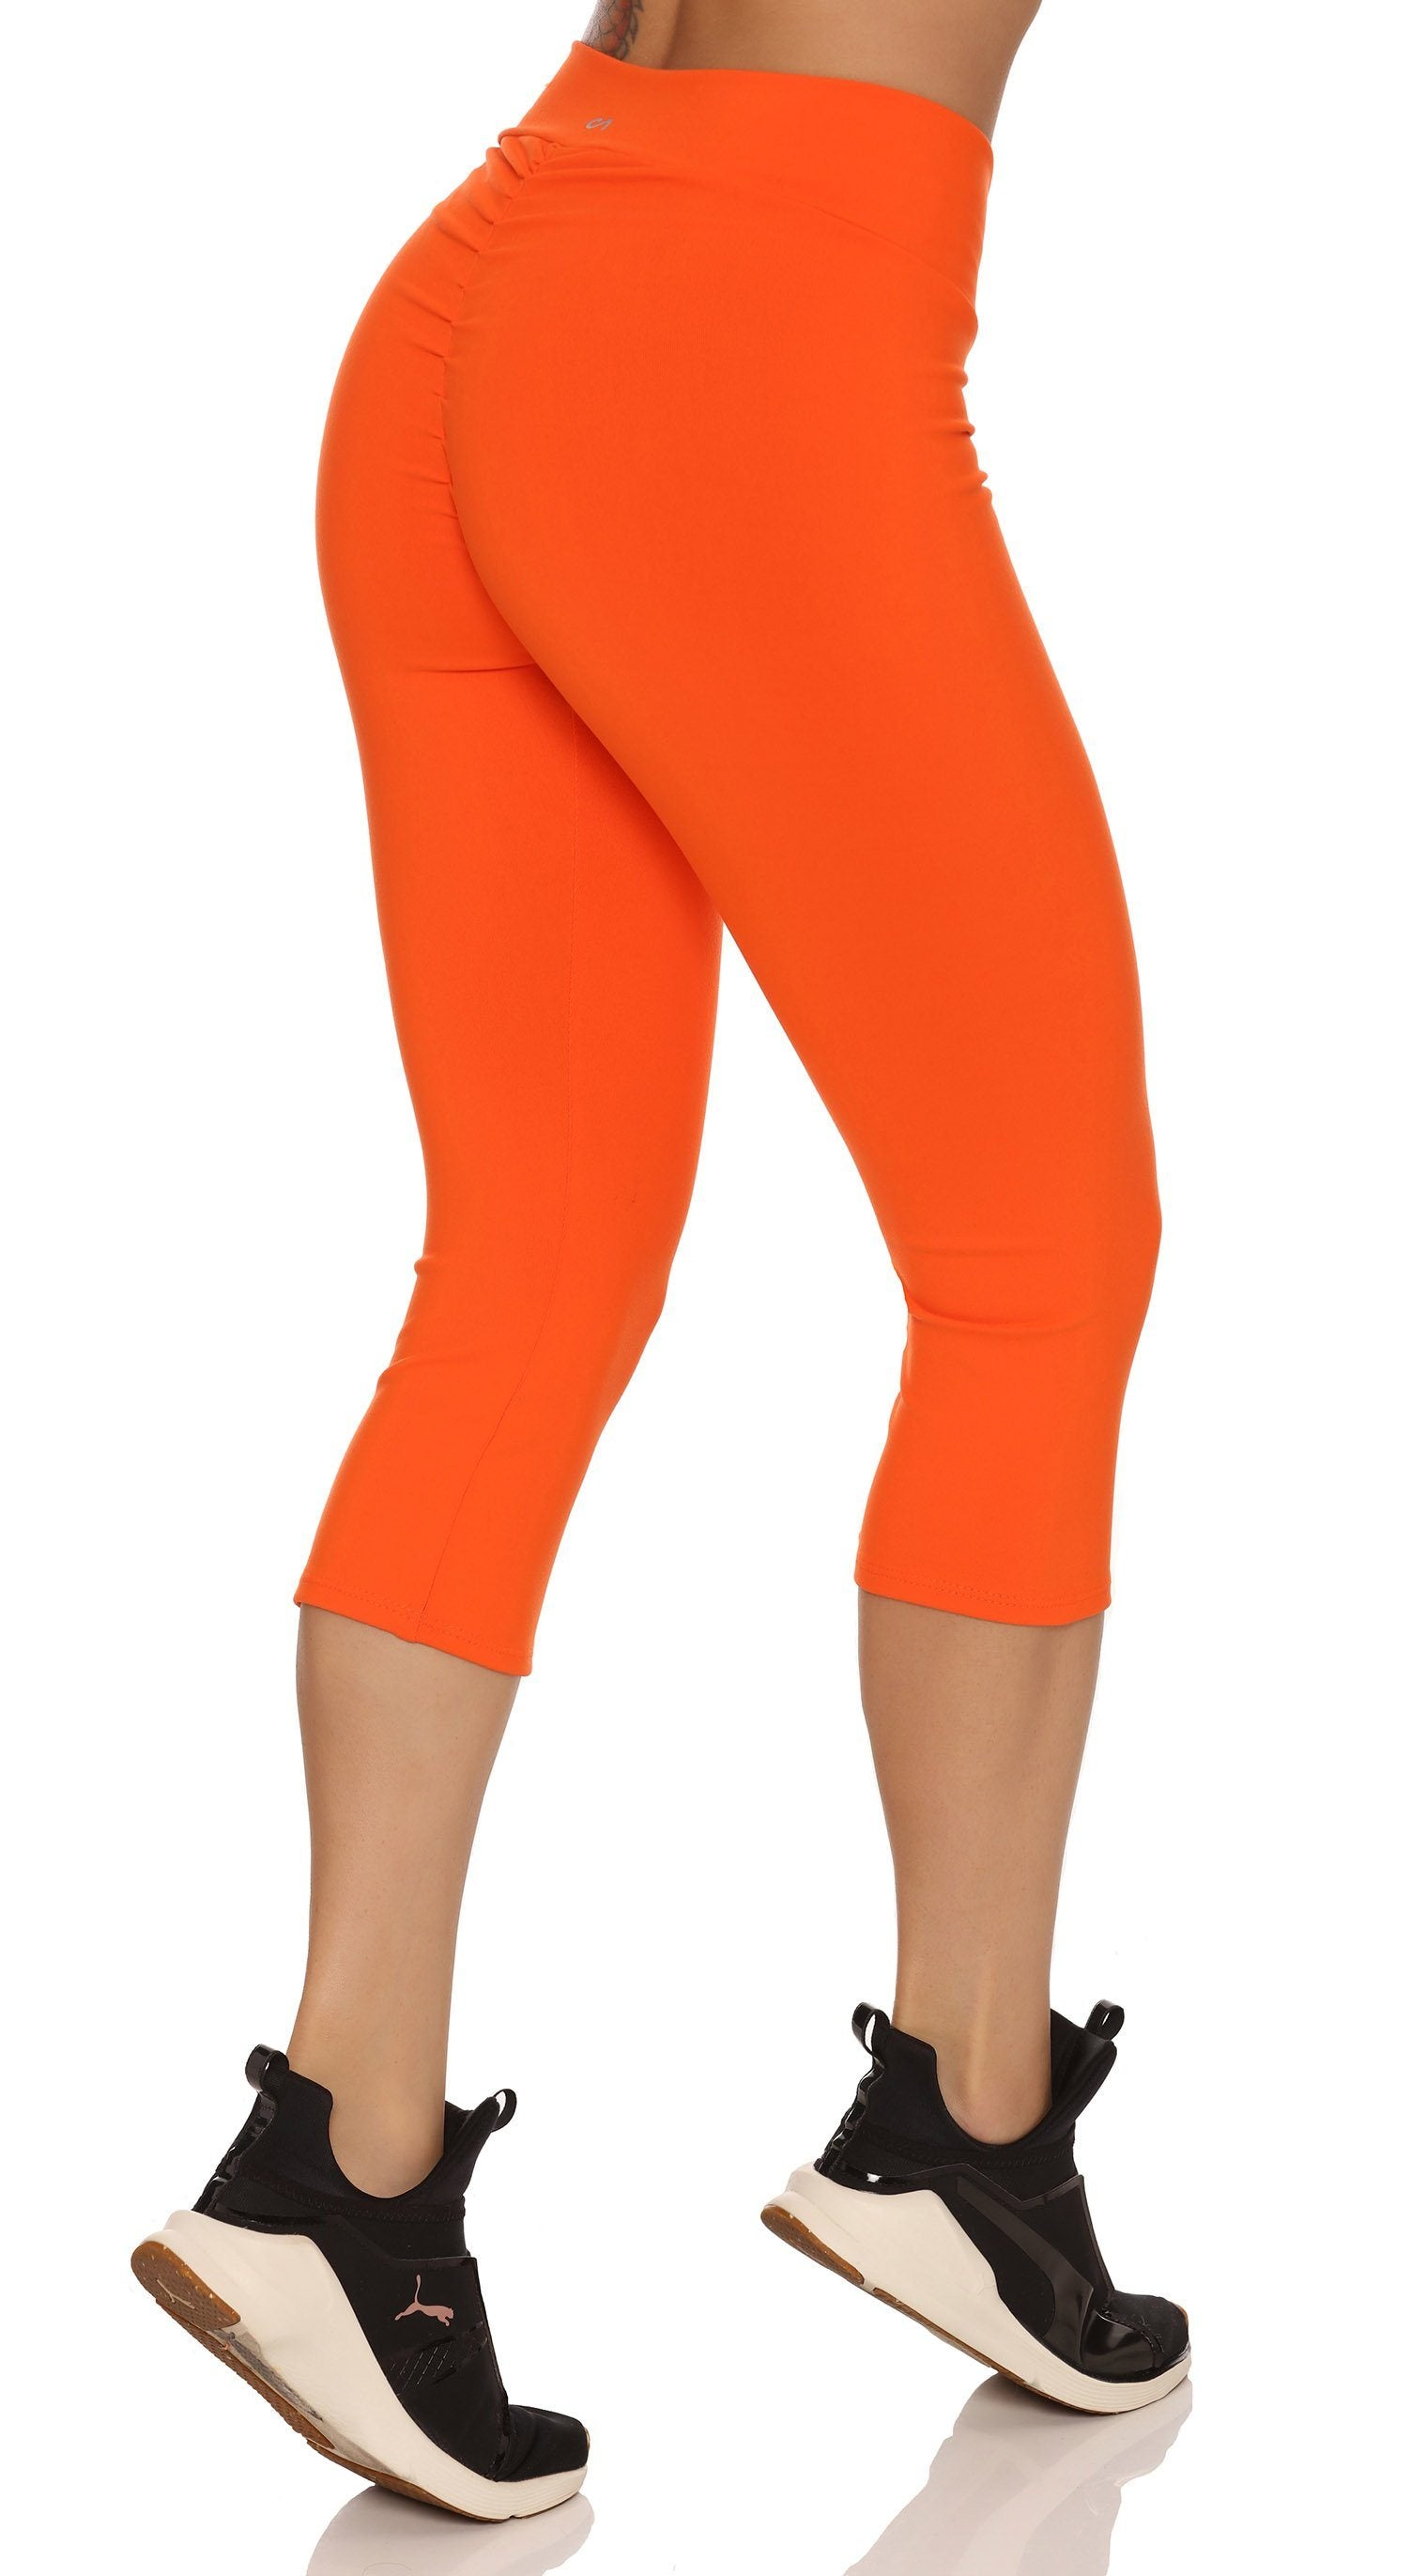 85fea85e6b25a Canoan - Brazilian Workout Capri Pants - Scrunch Booty Lift! Compression  Orange